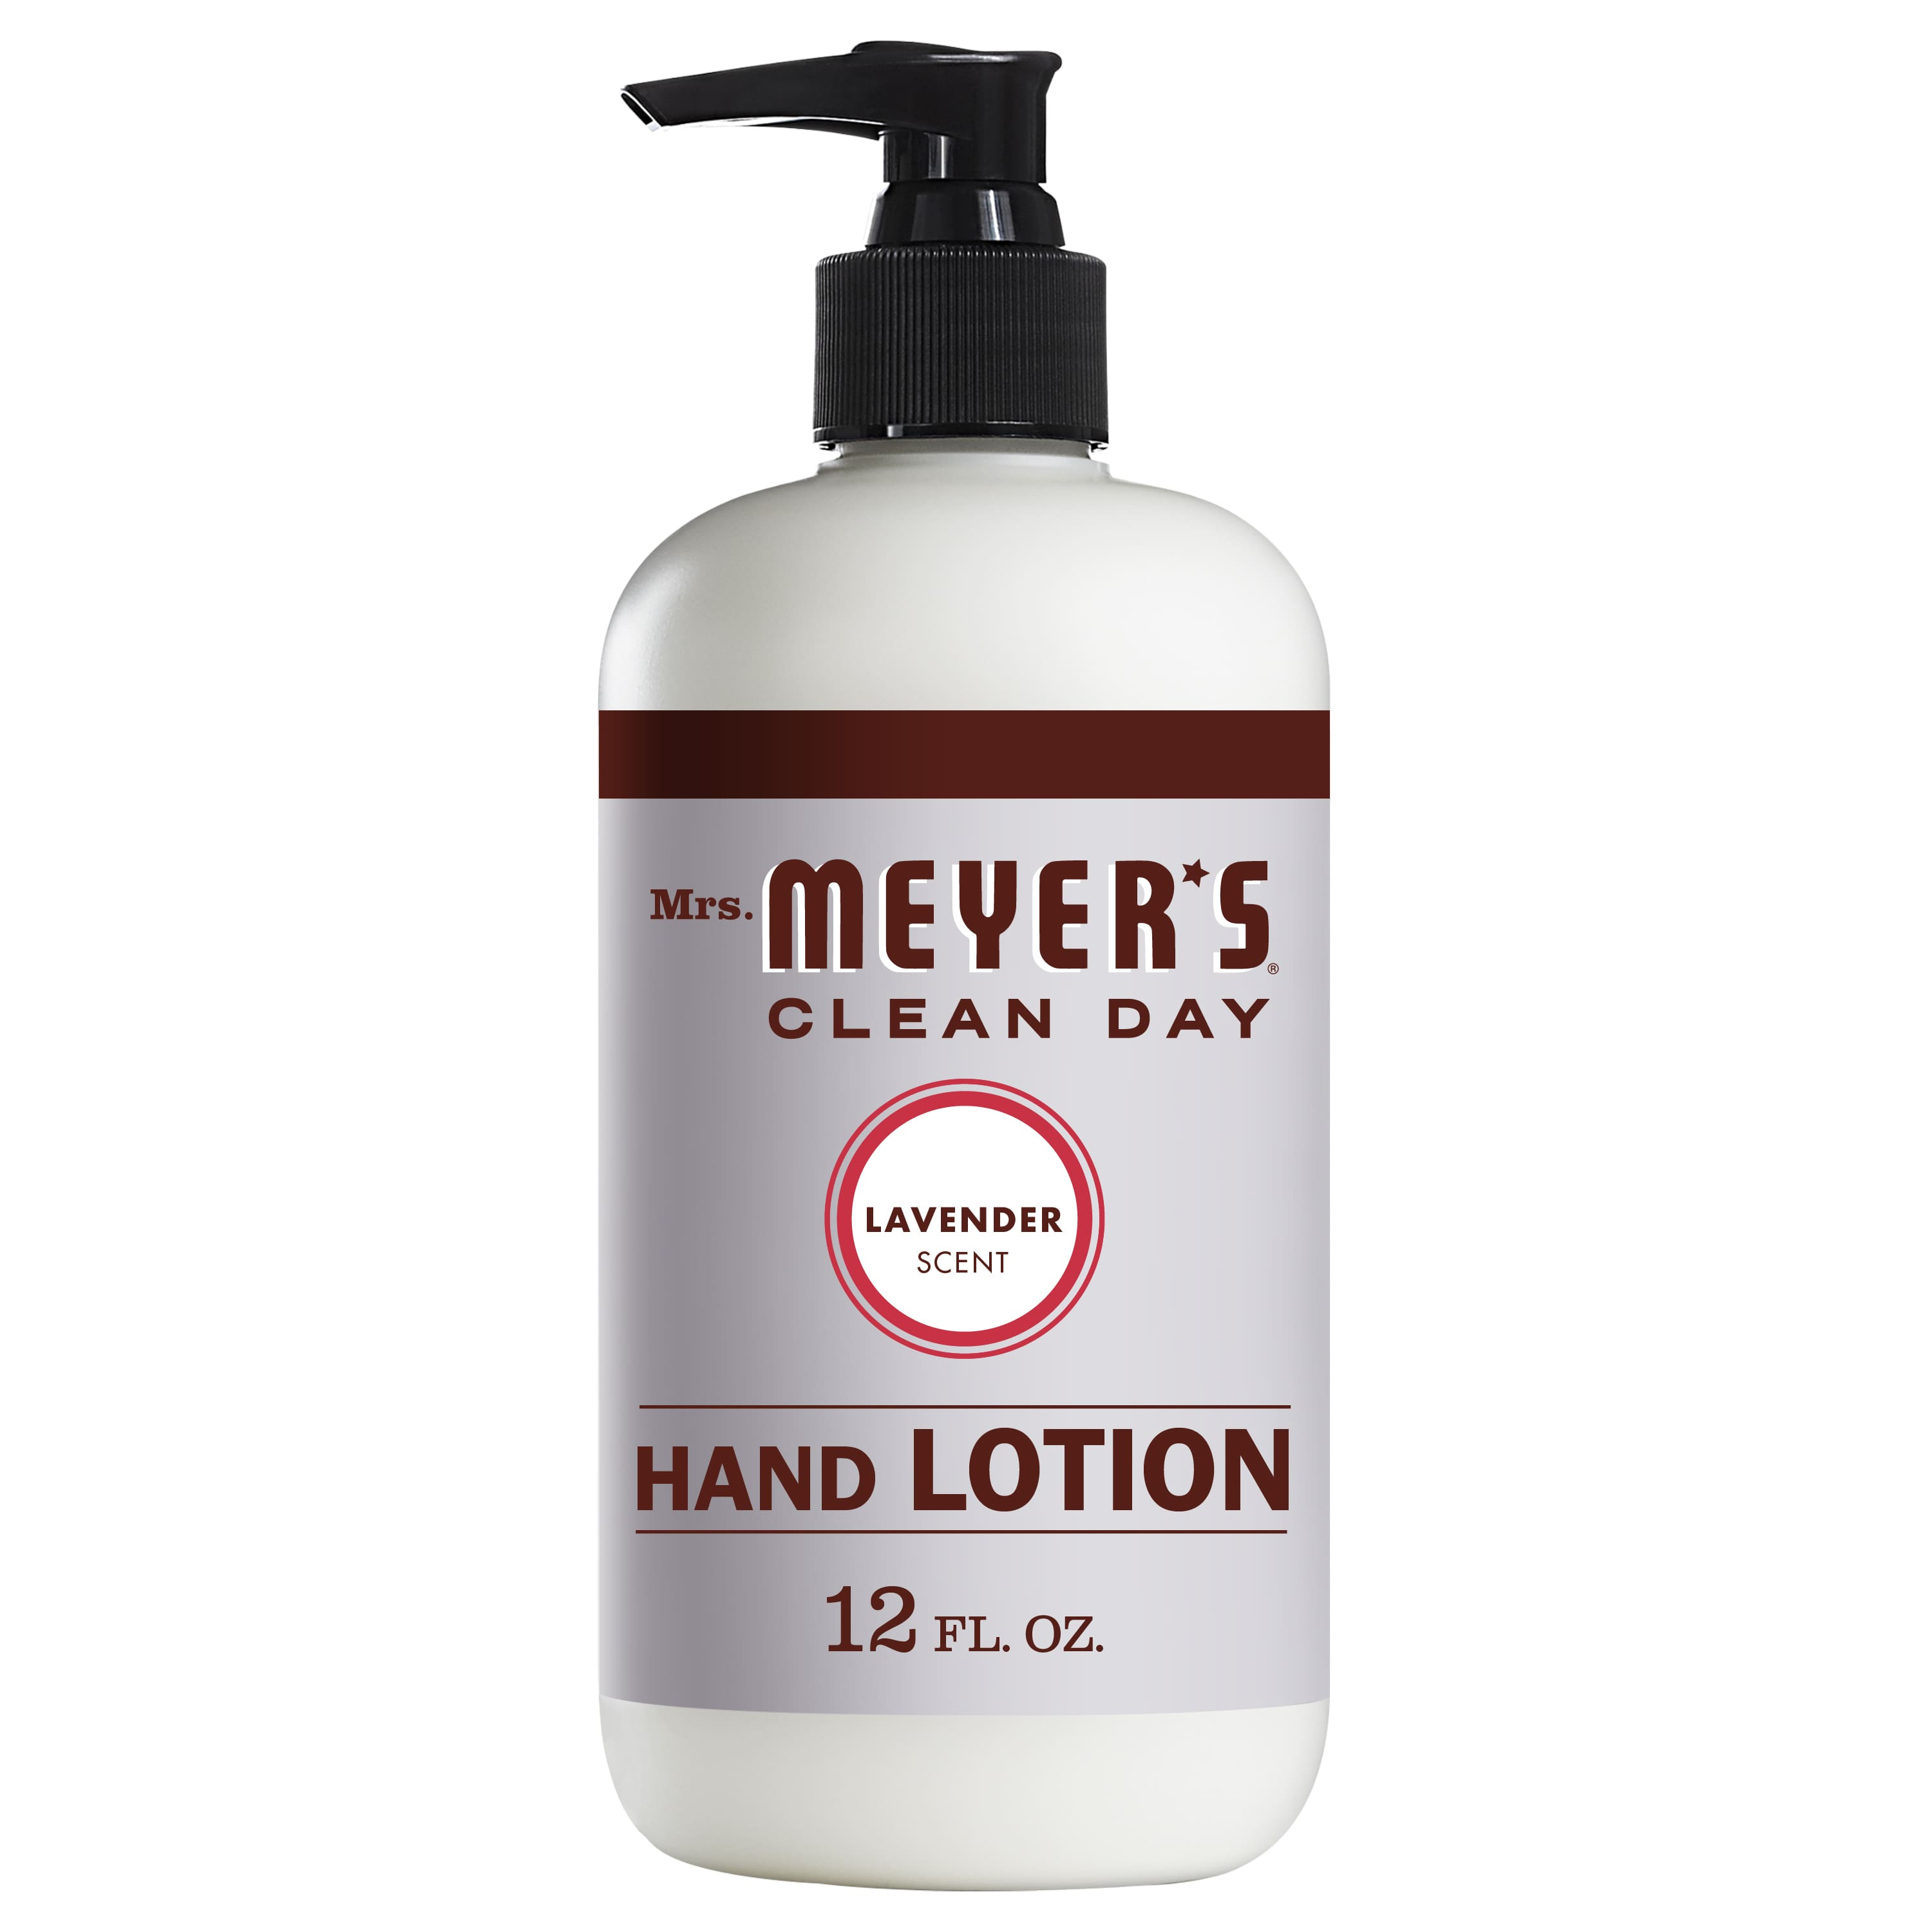 12-Oz Mrs. Meyer's Clean Day Hand Lotion (Lavender) $2.38 w/ S&S + Free Shipping w/ Prime or on $25+